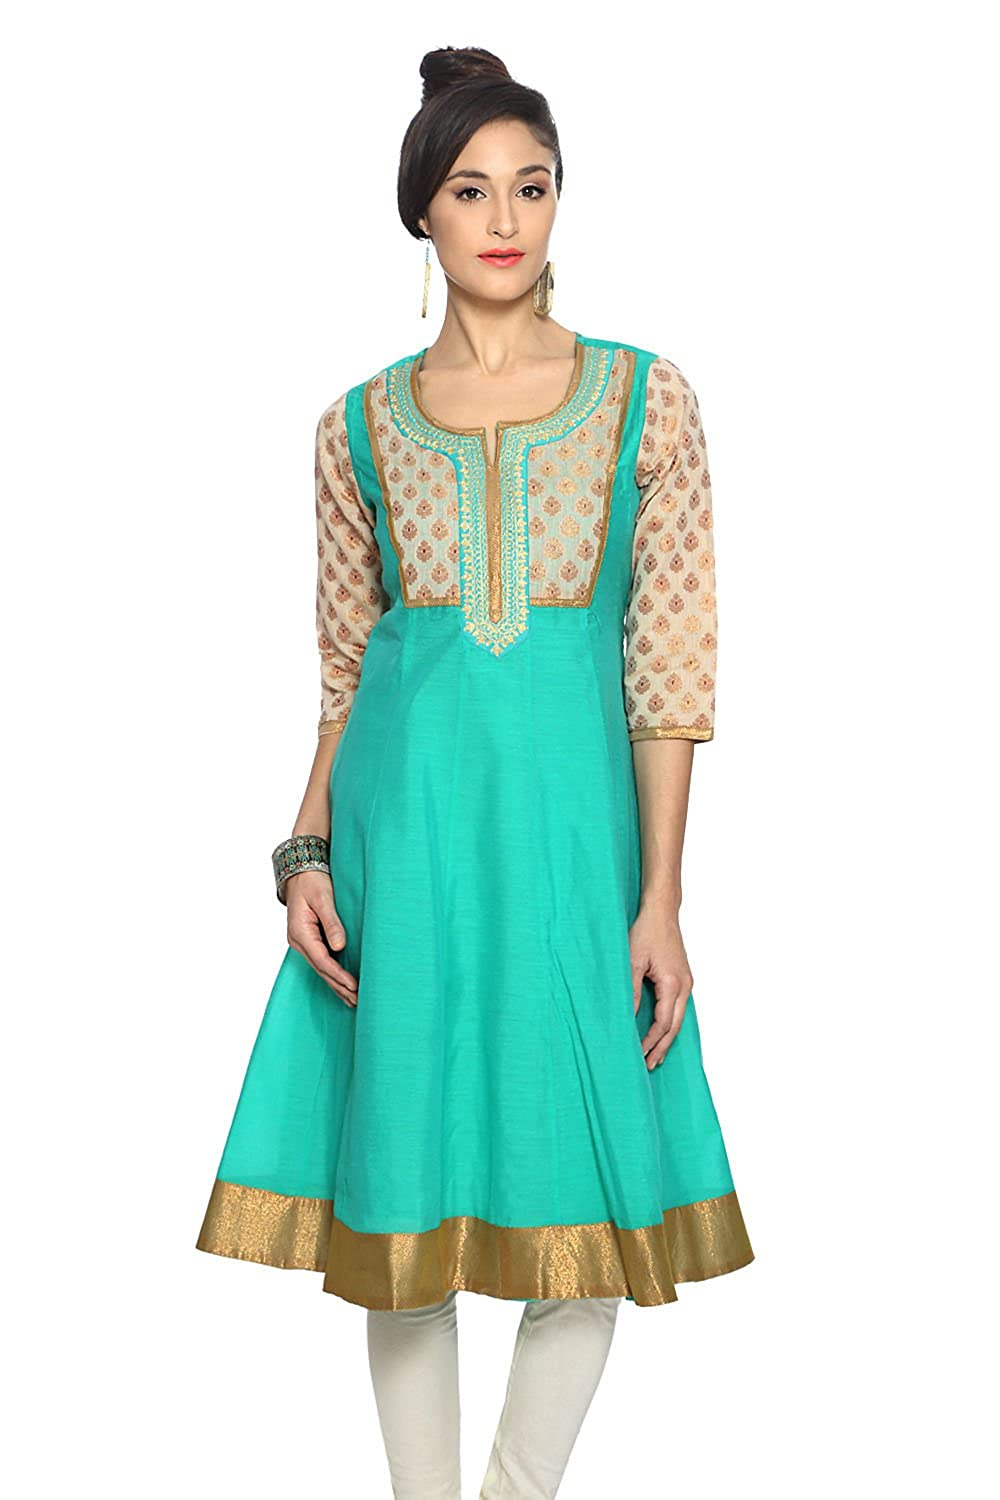 Rangmanch by Pantaloons Womens Cotton Brocade Anarkali Kurta